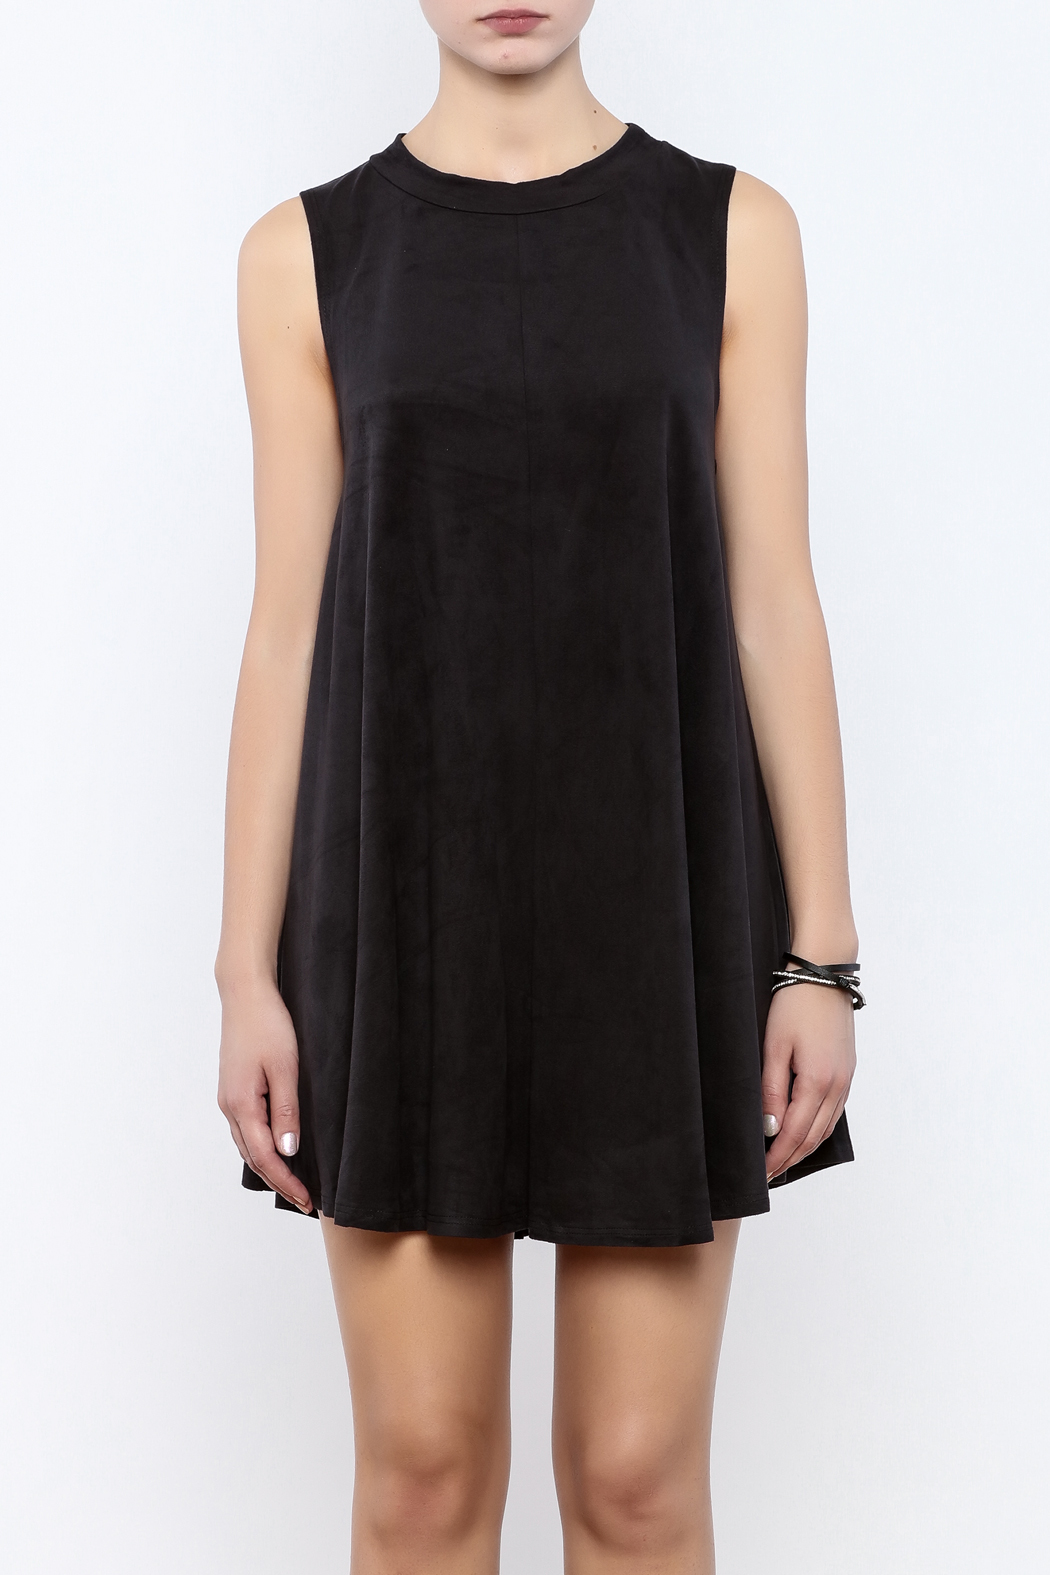 Coveted Clothing Faux Suede Tank Dress - Side Cropped Image